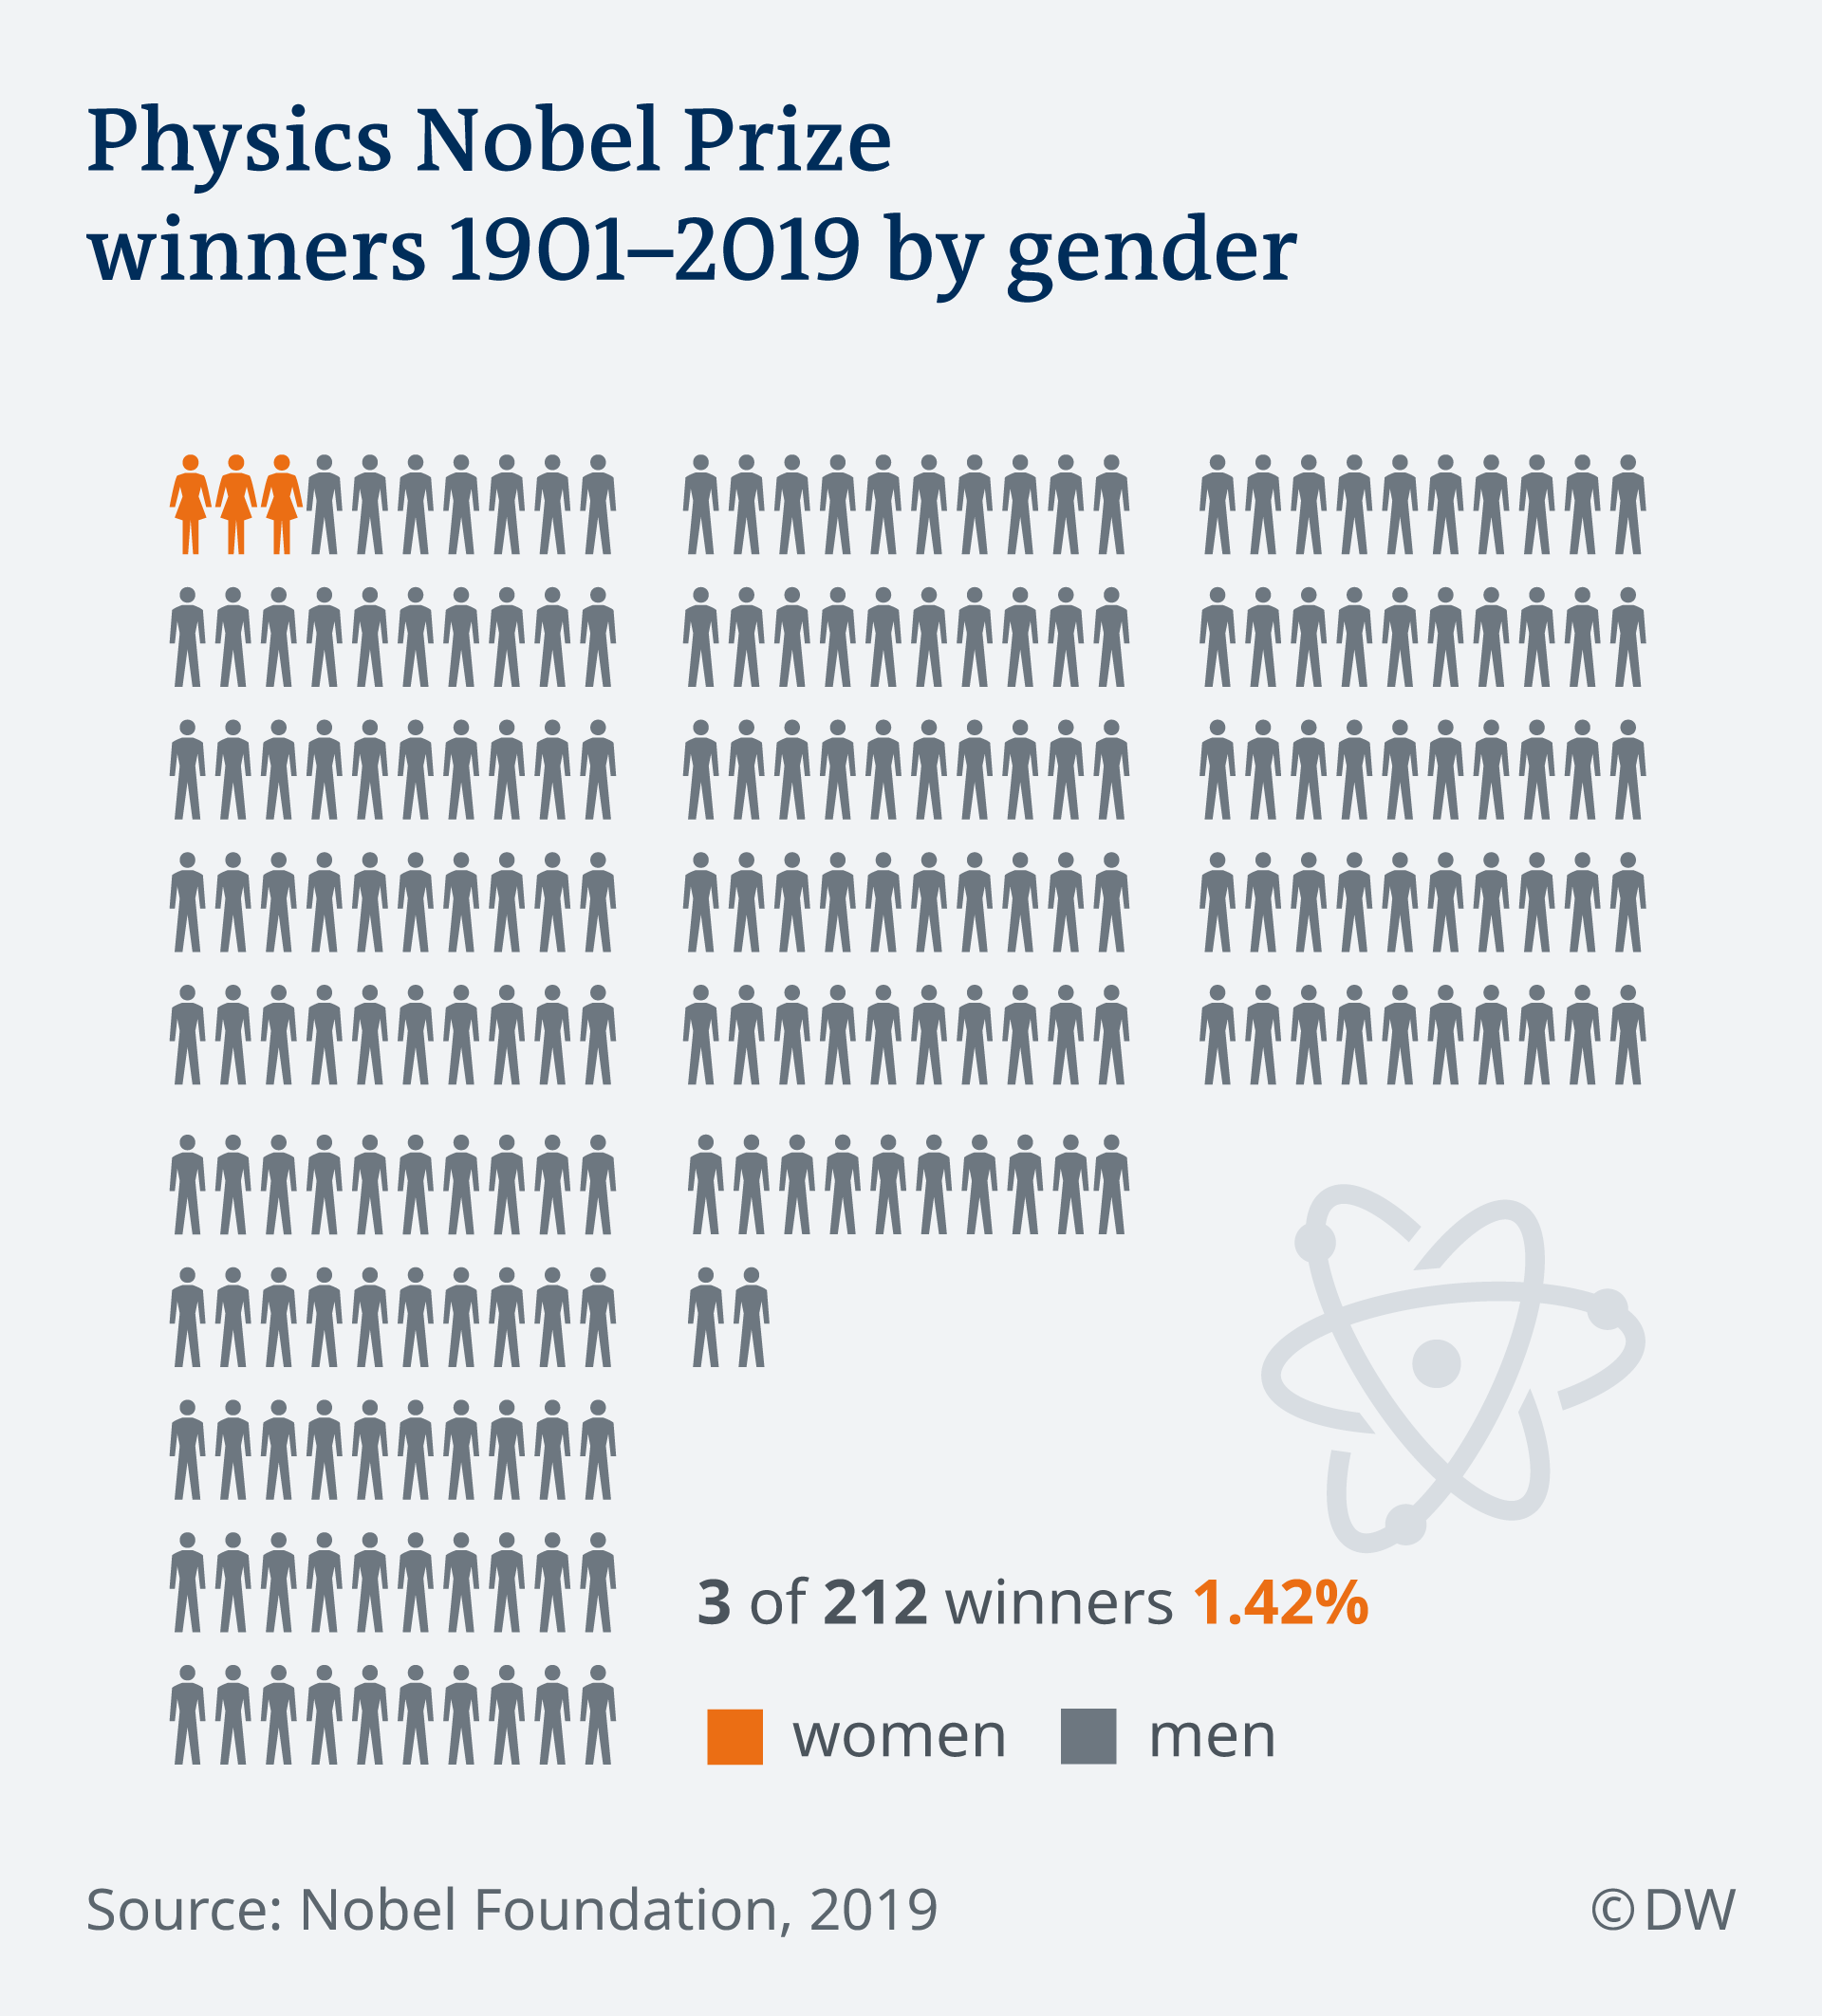 Infographic showing winners of the Physics Nobel Prize by gender